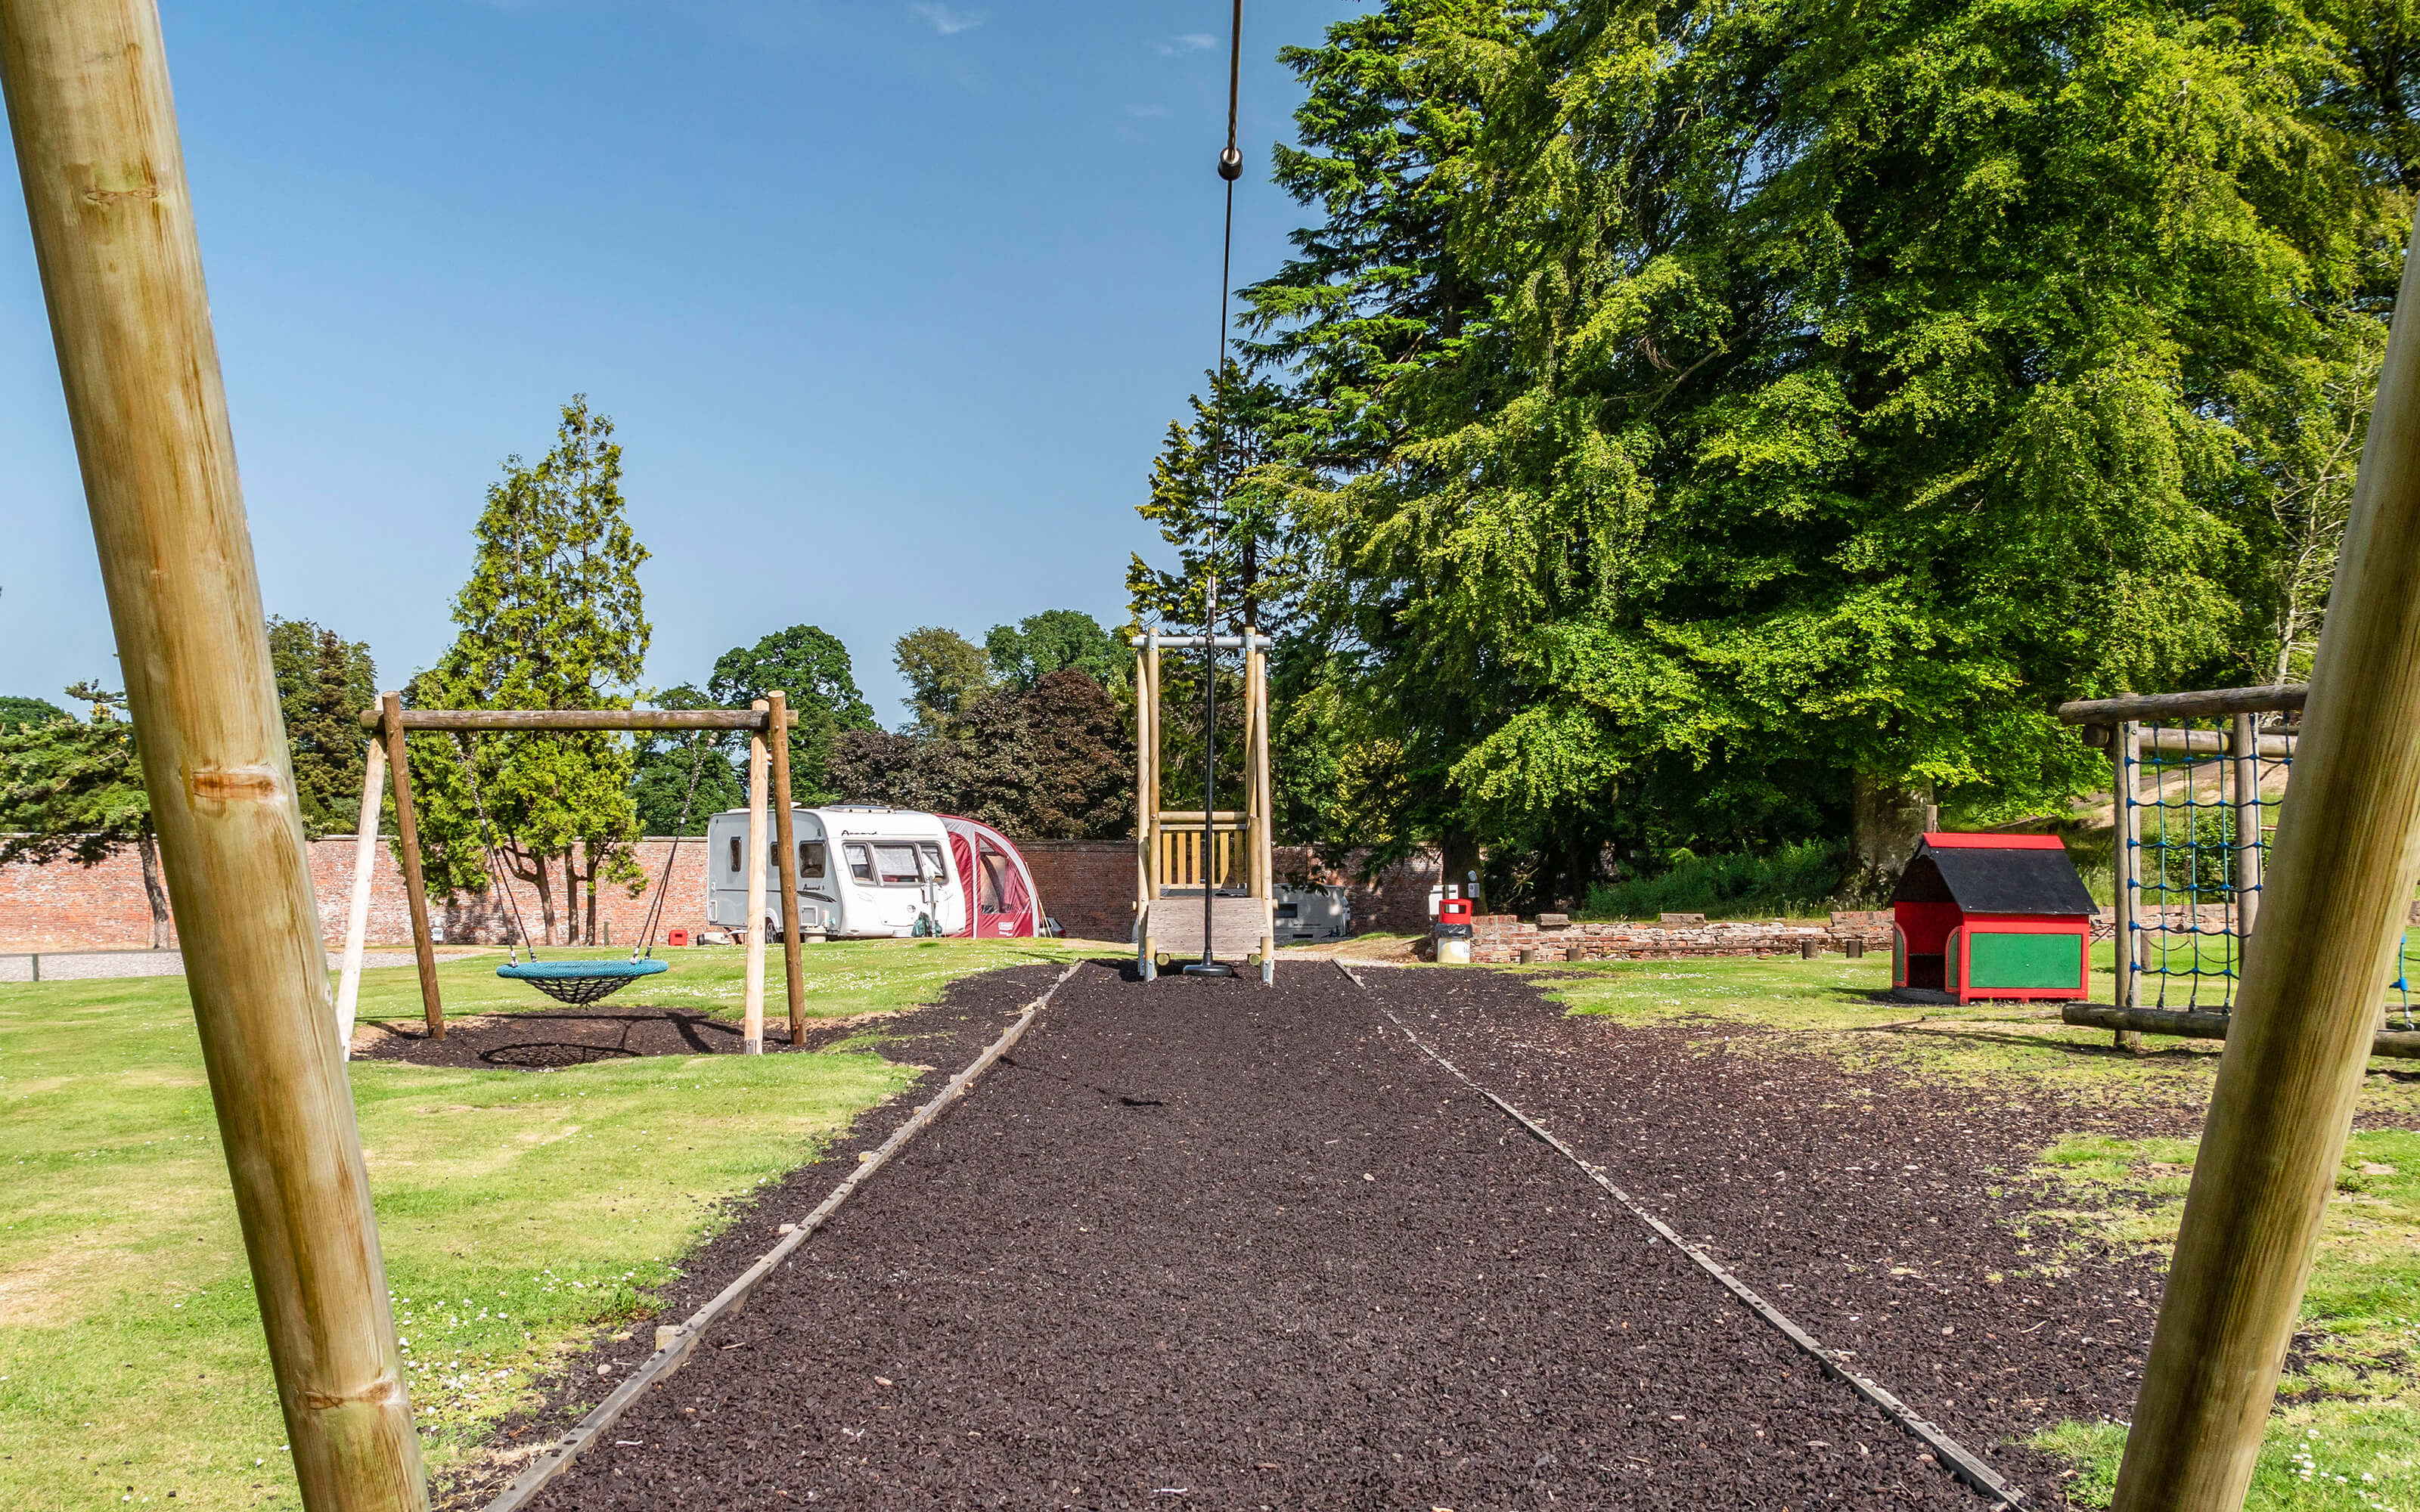 A view of the zip wire in the children's play area.